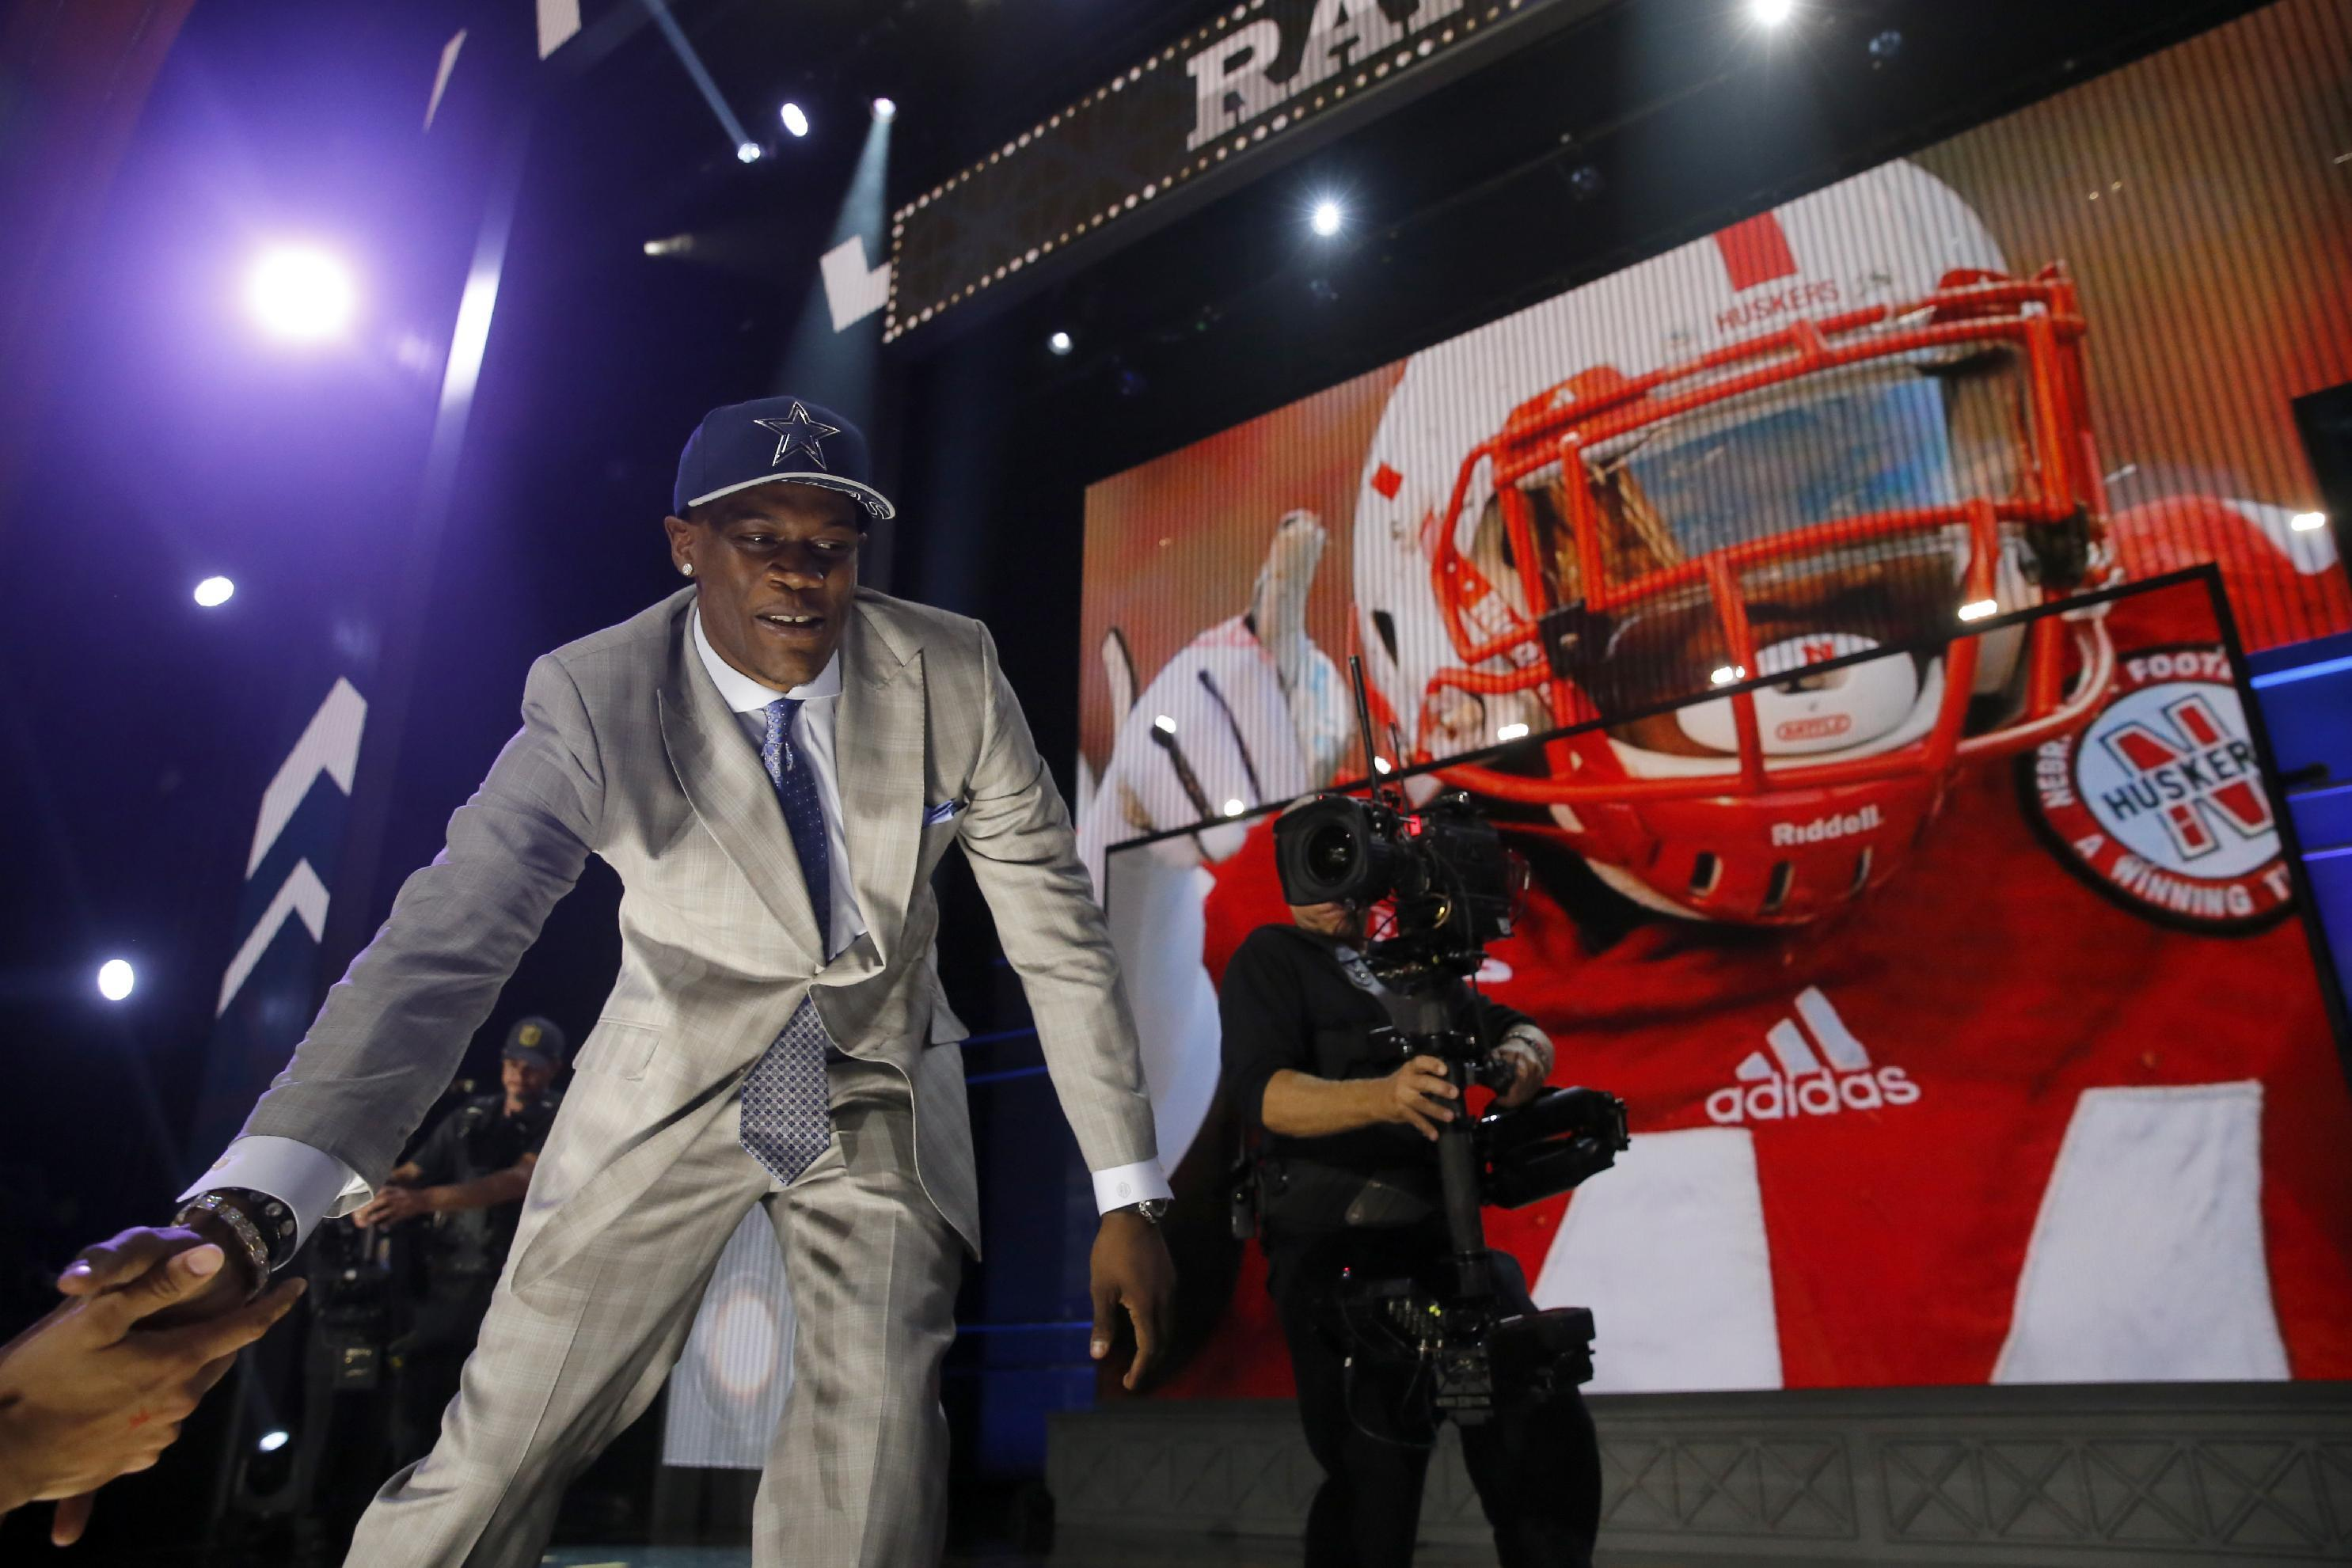 Cowboys grab sliding pass rusher Randy Gregory in 2nd round